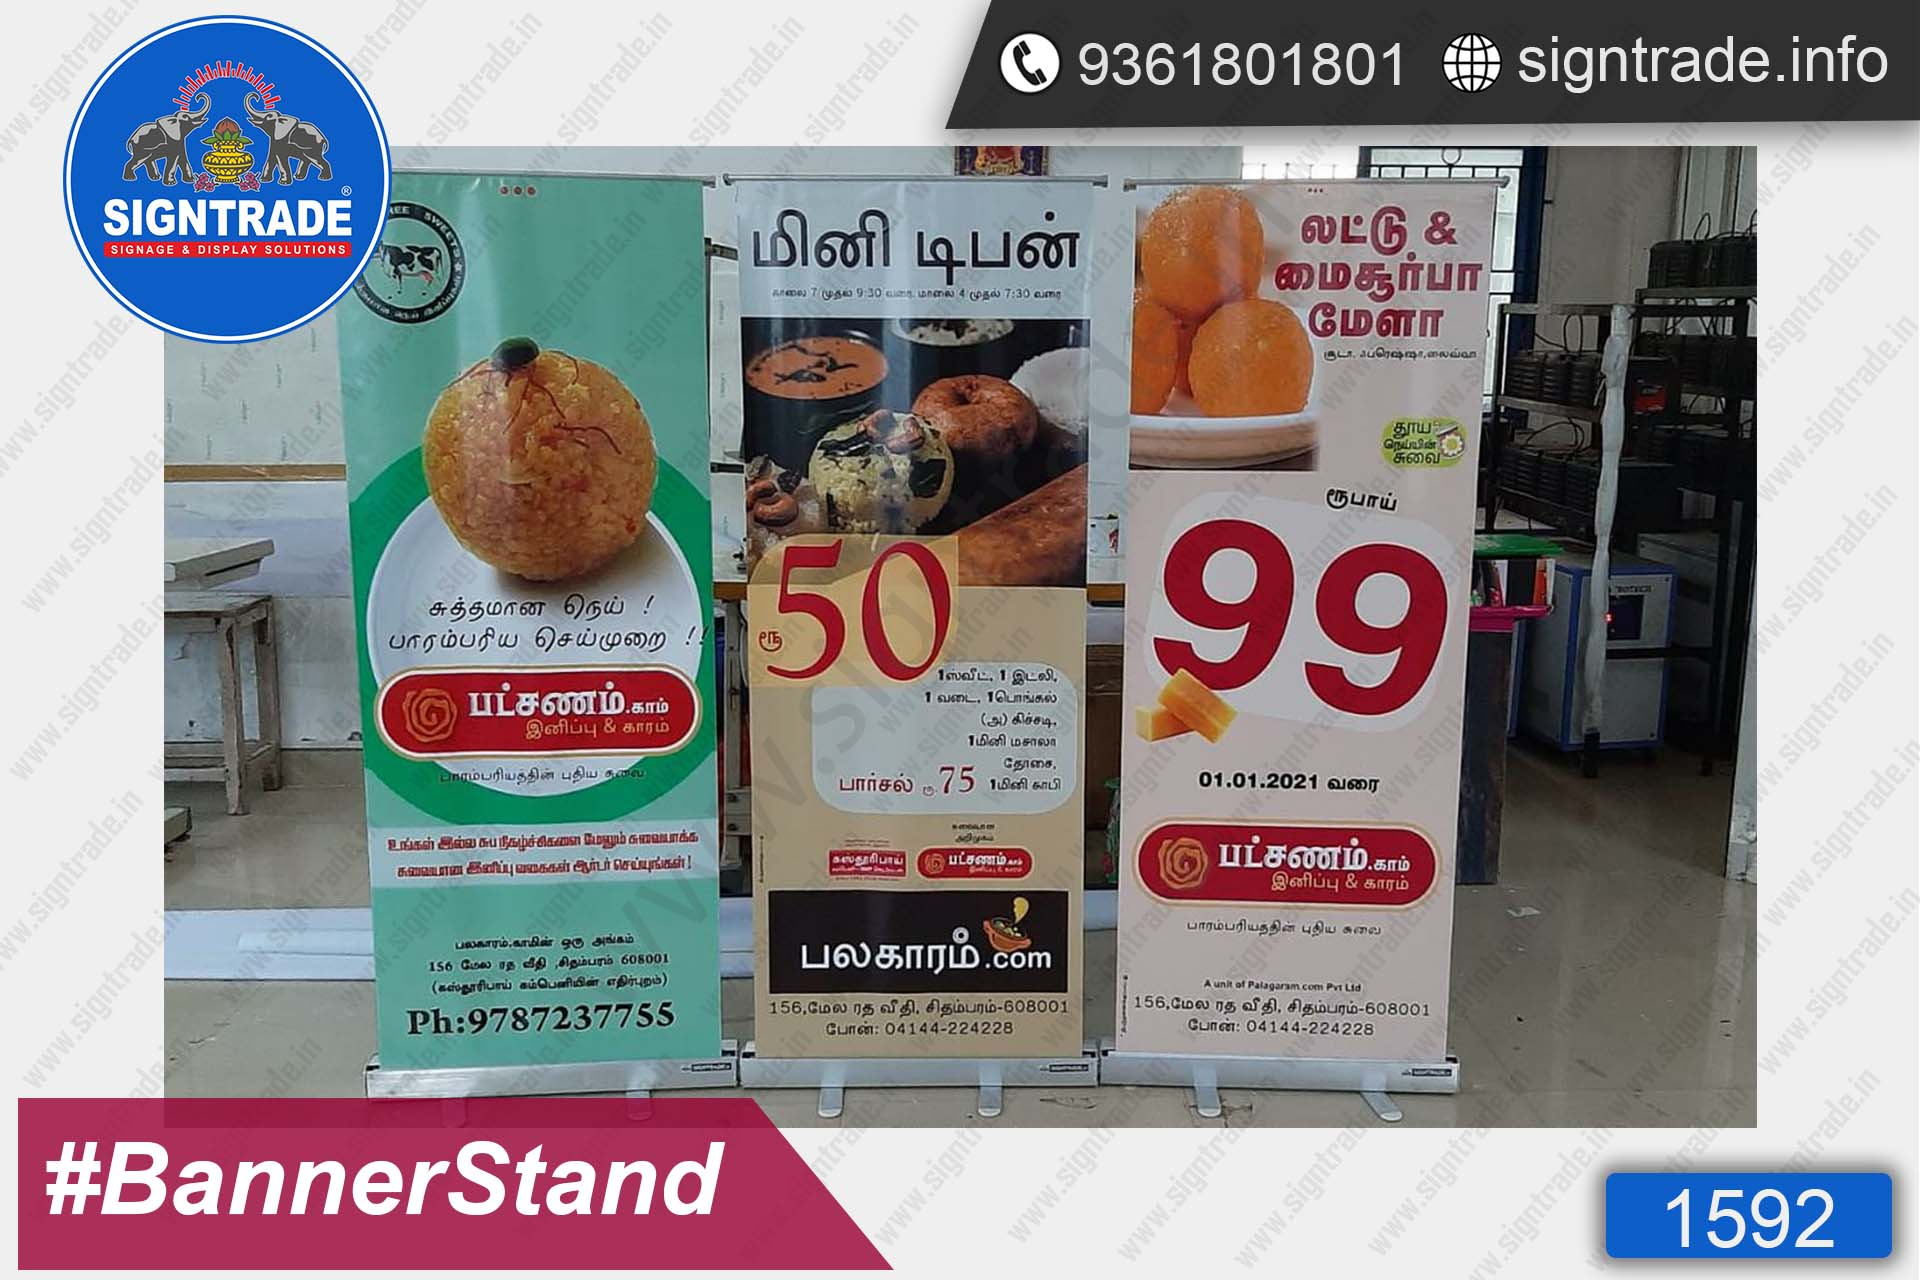 palakaram.com - SIGNTRADE - Roll Up Banner Stand Manufacturers in Chennai